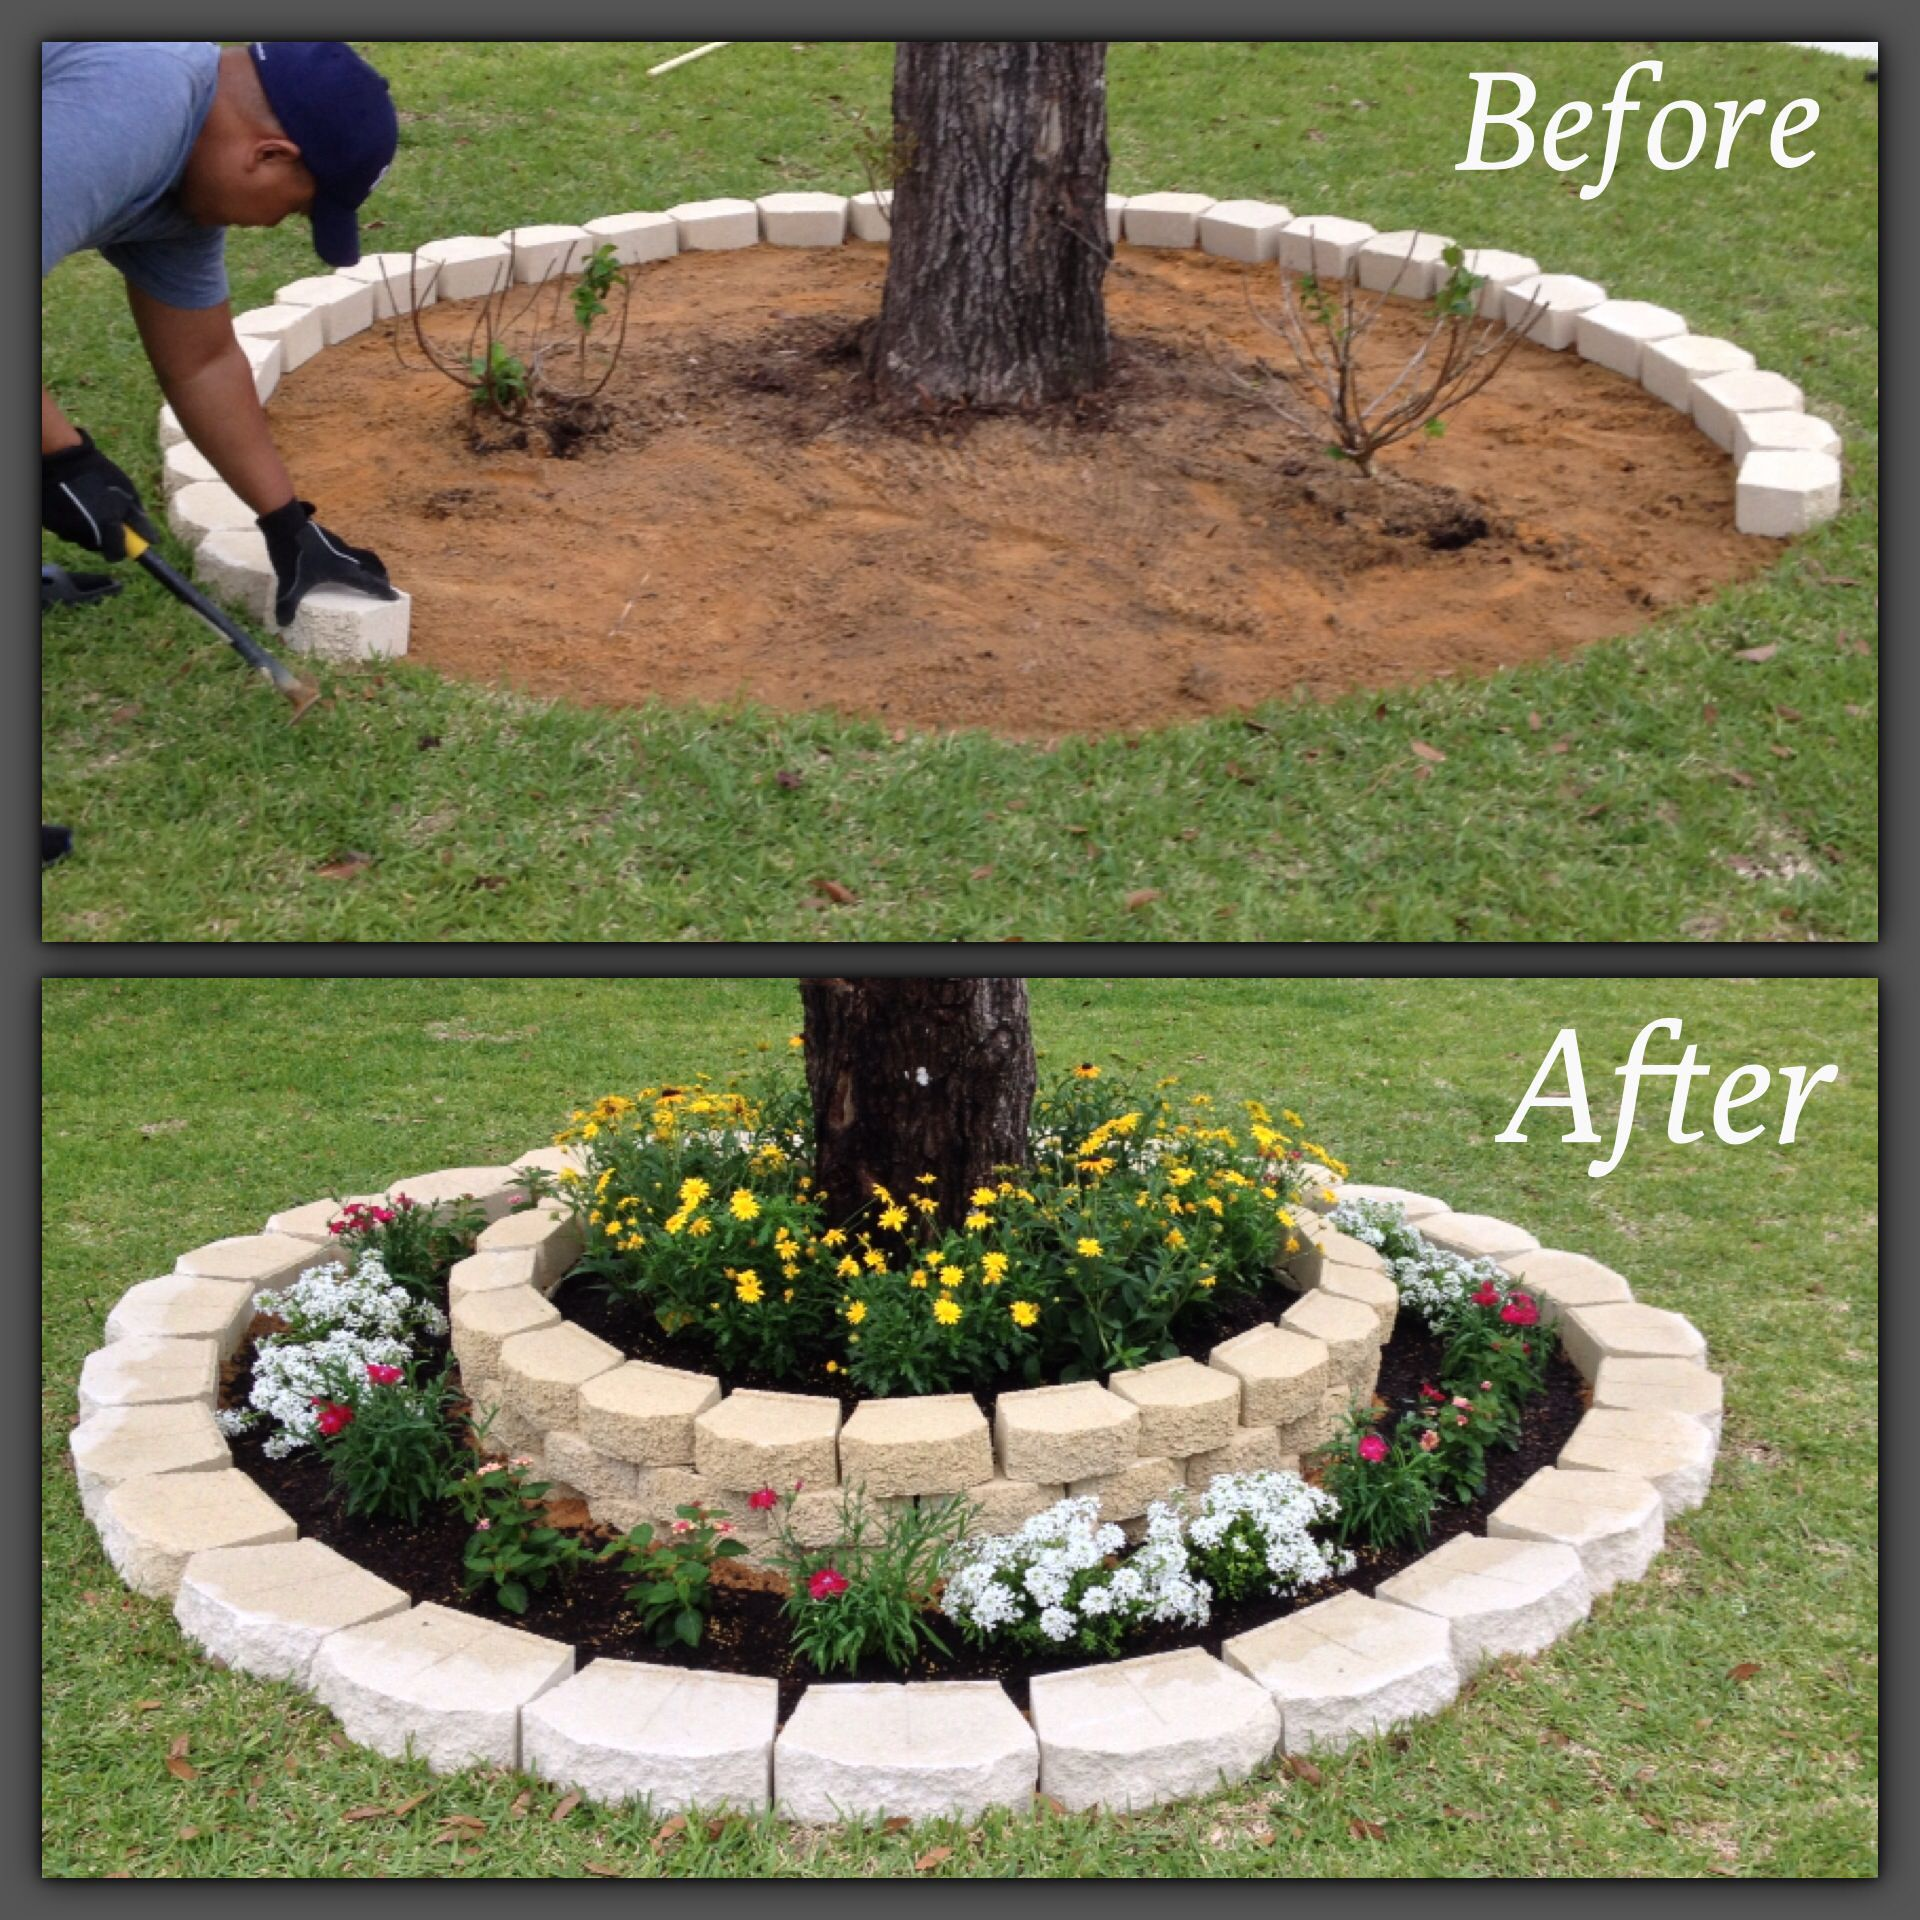 New home garden ideas  My front yard is looking much better now   New house ideas